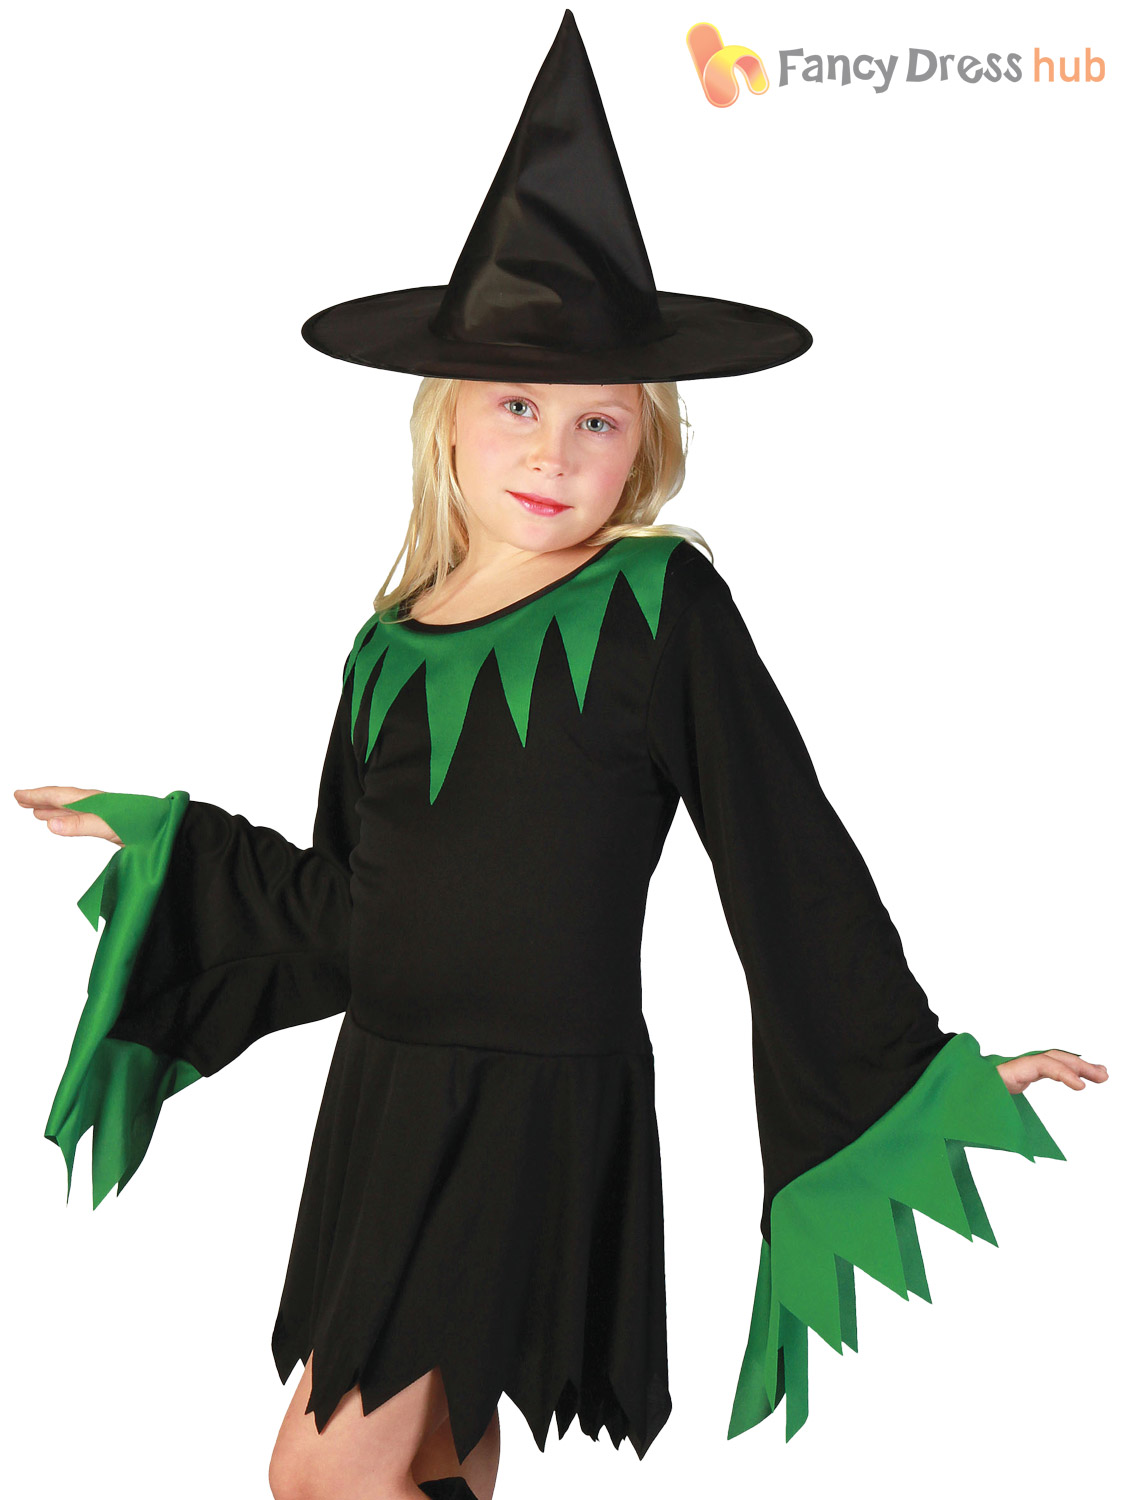 9b05b4d4dff Details about Girls Witch Costume Childs Kids Halloween Wicked Witches  Fancy Dress Outfit